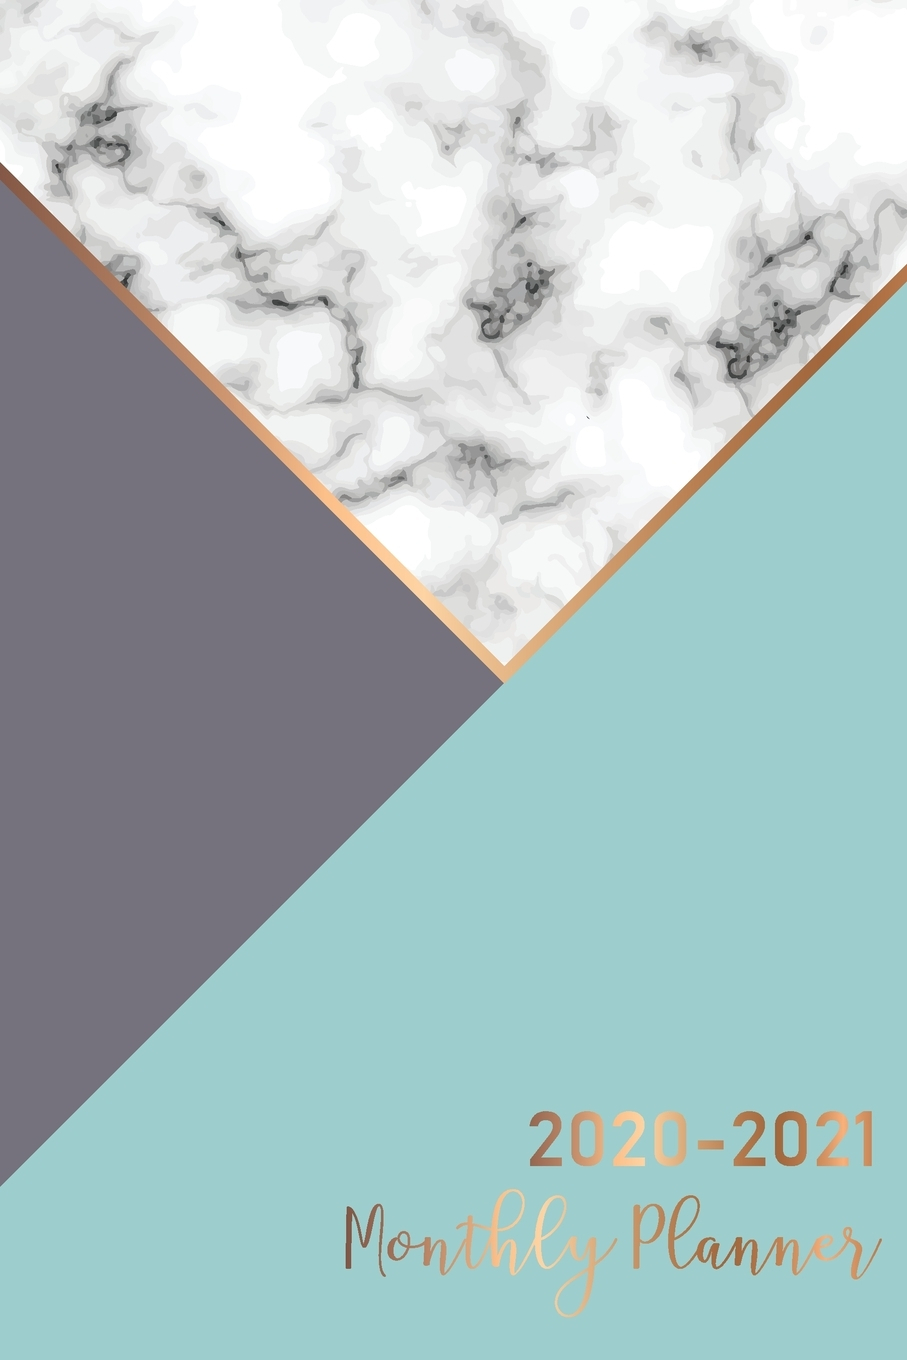 2020-2021 Daily Monthly Calendar Pocket Planner, 24 Months Jan 2020 To Dec  2021: 2020-2021 Monthly Planner: Marble Cover - 2 Year Calendar 2020-2021 inside 2021-2021: 2-Year Planner 24-Monthly